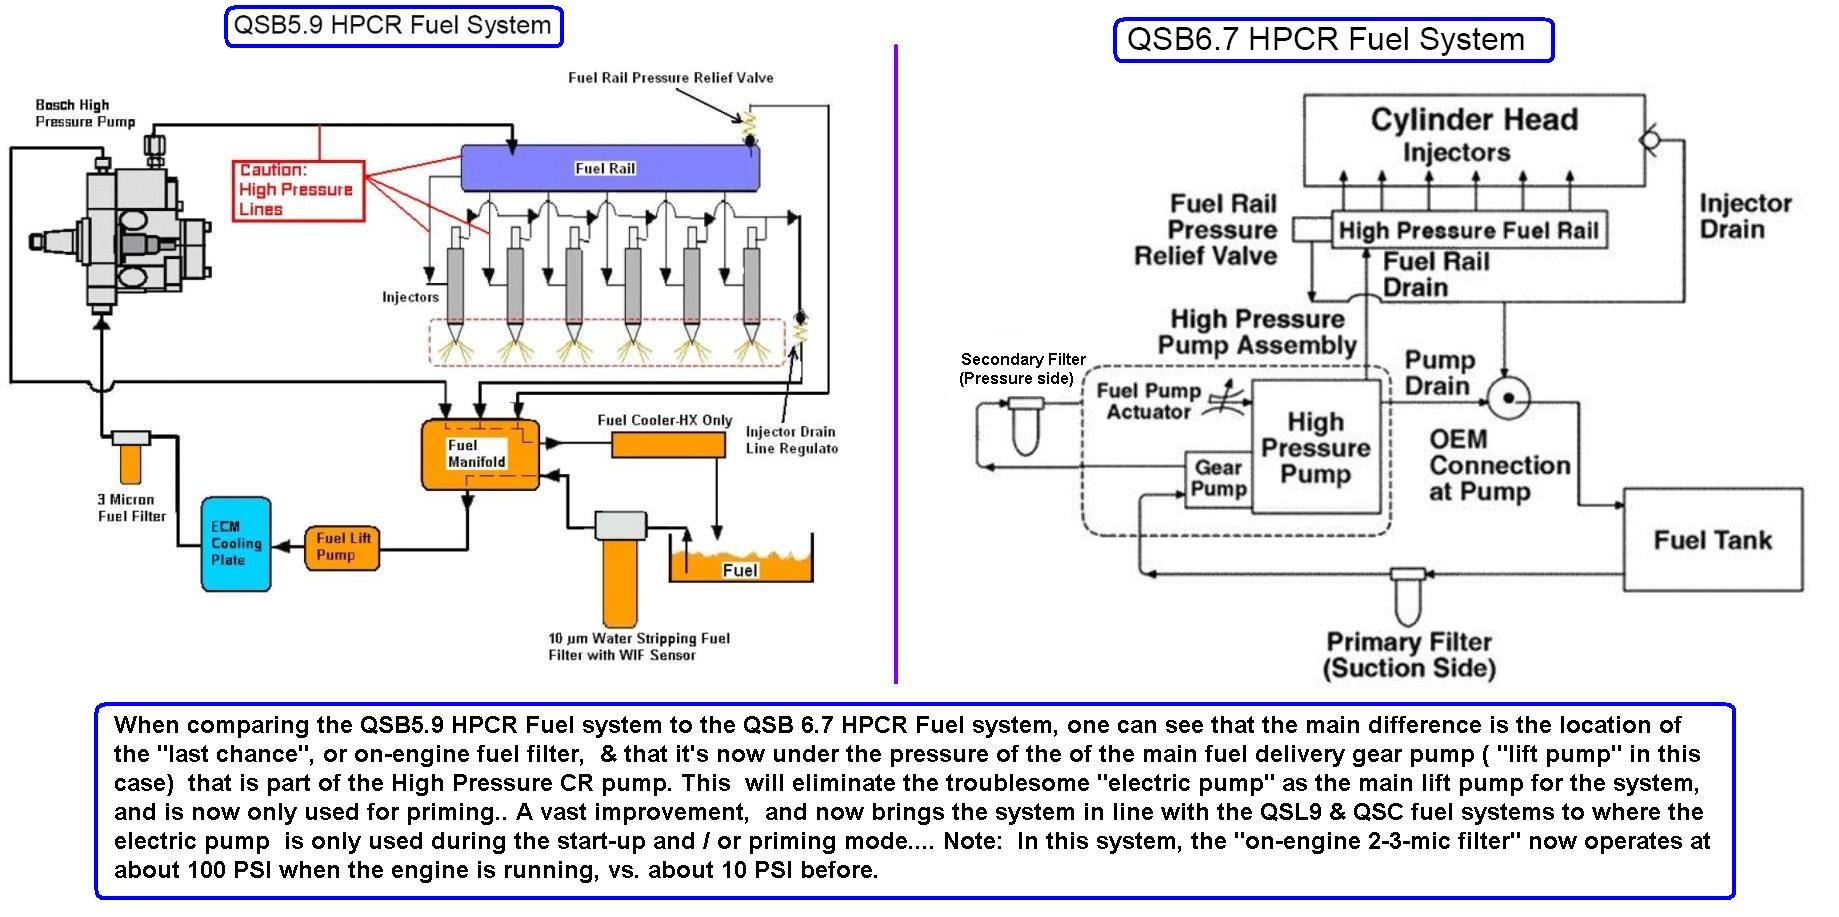 QSB5.9_vs_QSB_6.7_HPCR_Fuel_System Yanmar Starter Wiring Diagram on yanmar starter switch, yanmar 3gm30f parts diagram, yanmar generator wiring diagram, yanmar starter motor, yanmar tachometer wiring diagram, yanmar diesel wiring diagram, yanmar electrical diagram, yanmar alternator, mercury ignition switch wiring diagram, yanmar 1500 tractor wiring diagrams, yanmar starter relay,